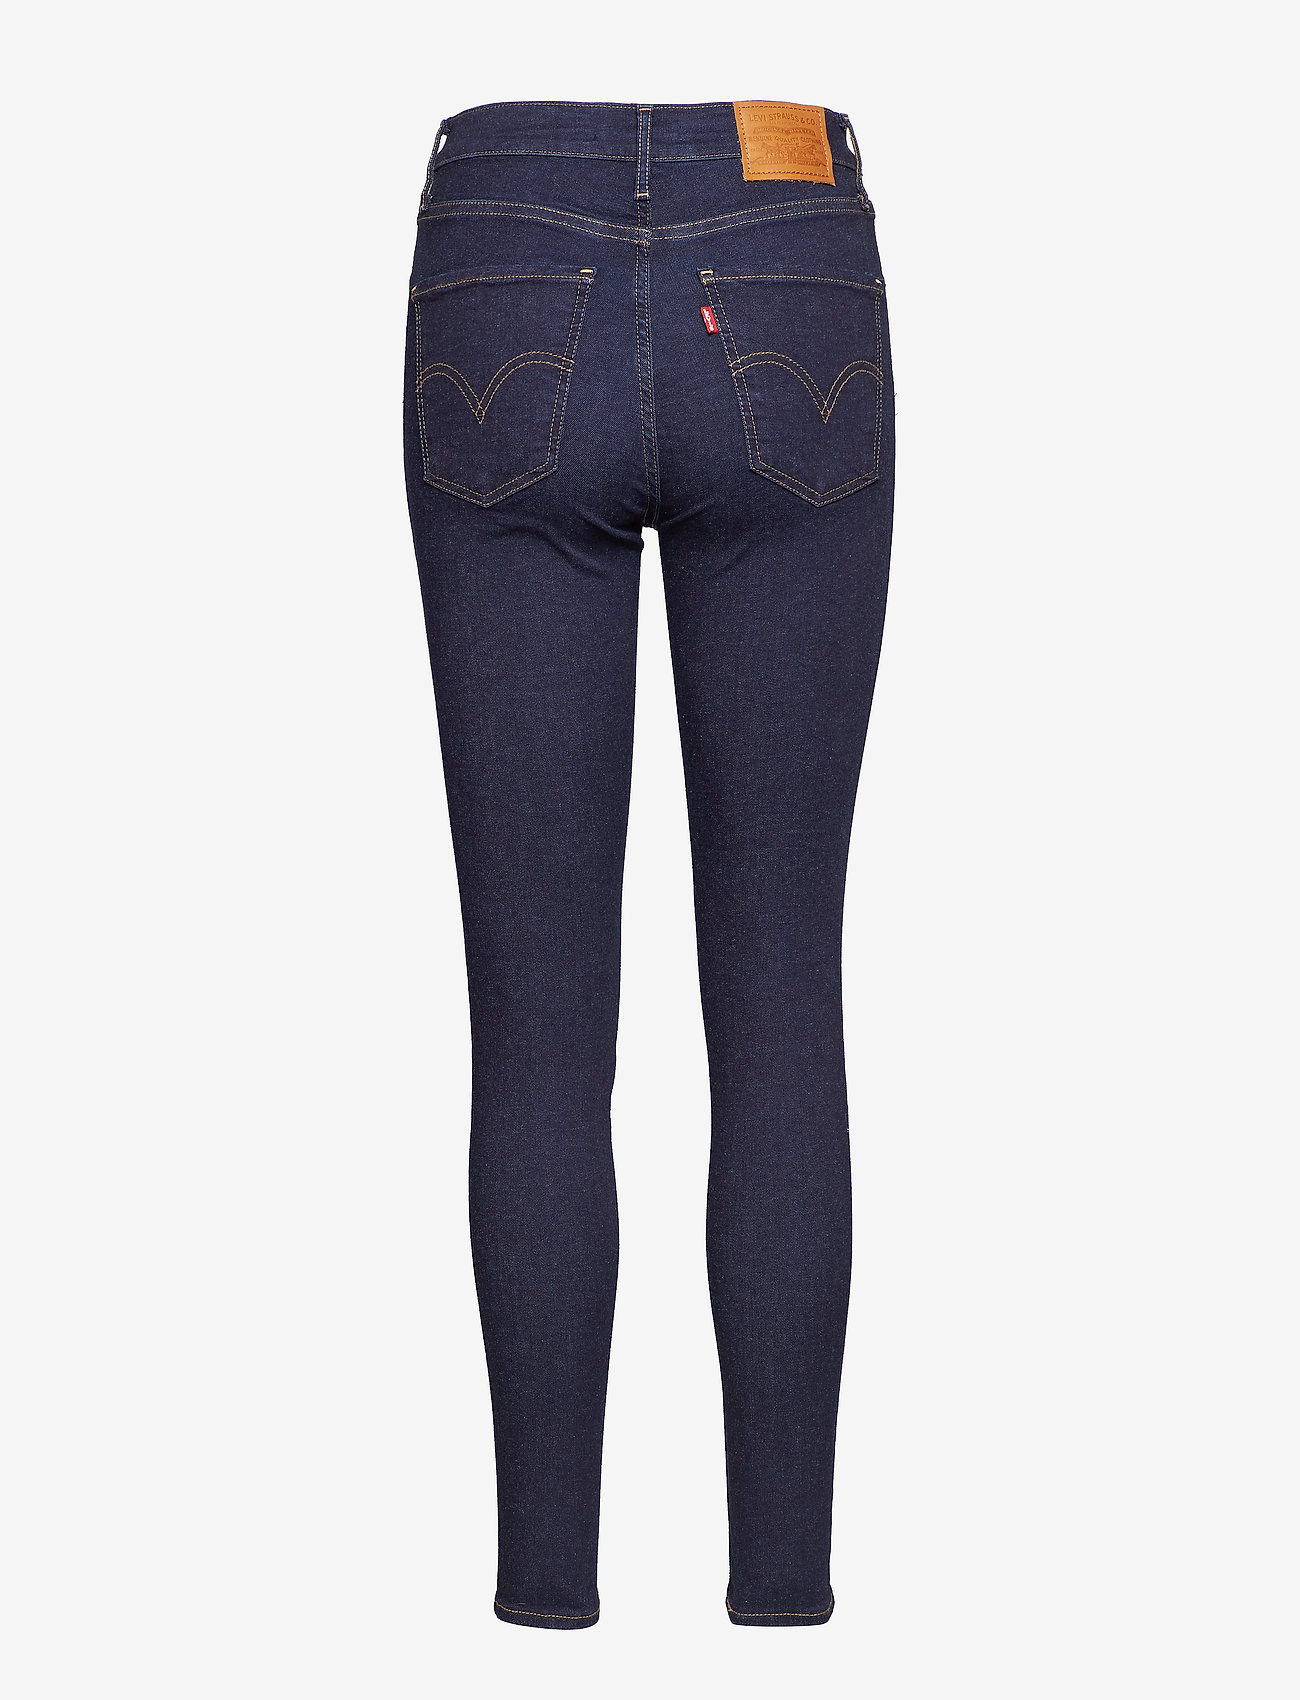 Mile High Super Skinny Celesti (Dark Indigo - Flat Finish) (899 kr) - LEVI´S Women fqJ1qzVE